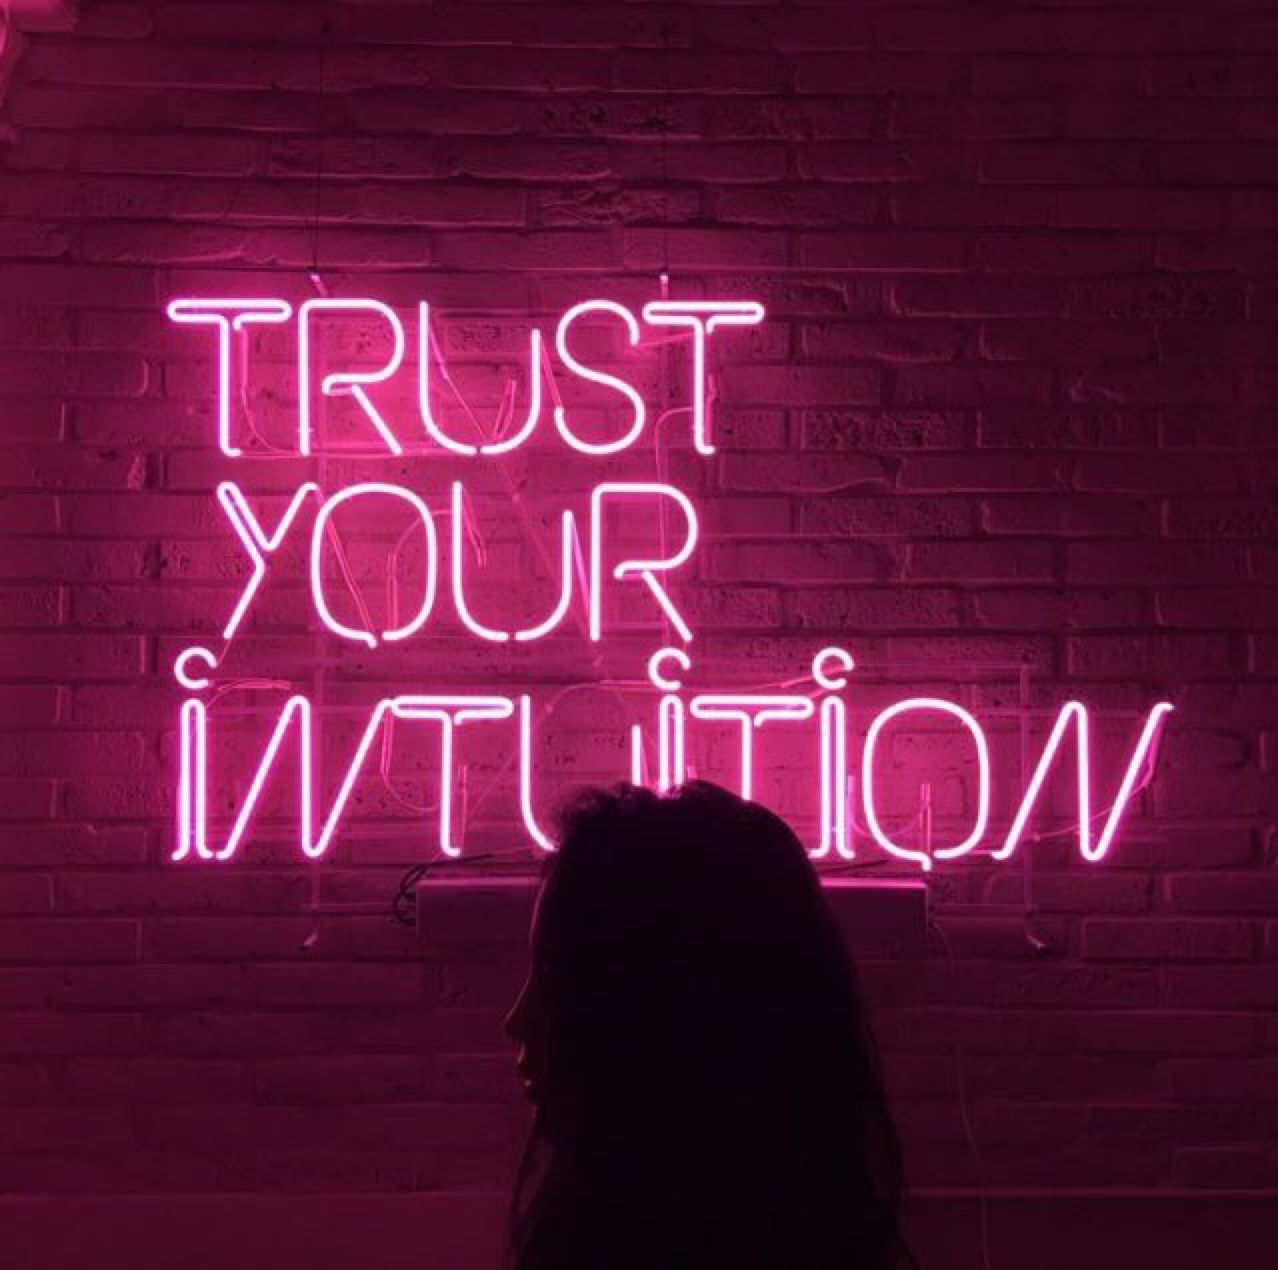 Trust You Intuition Hot Pink Neon Sign! Sometimes We Let